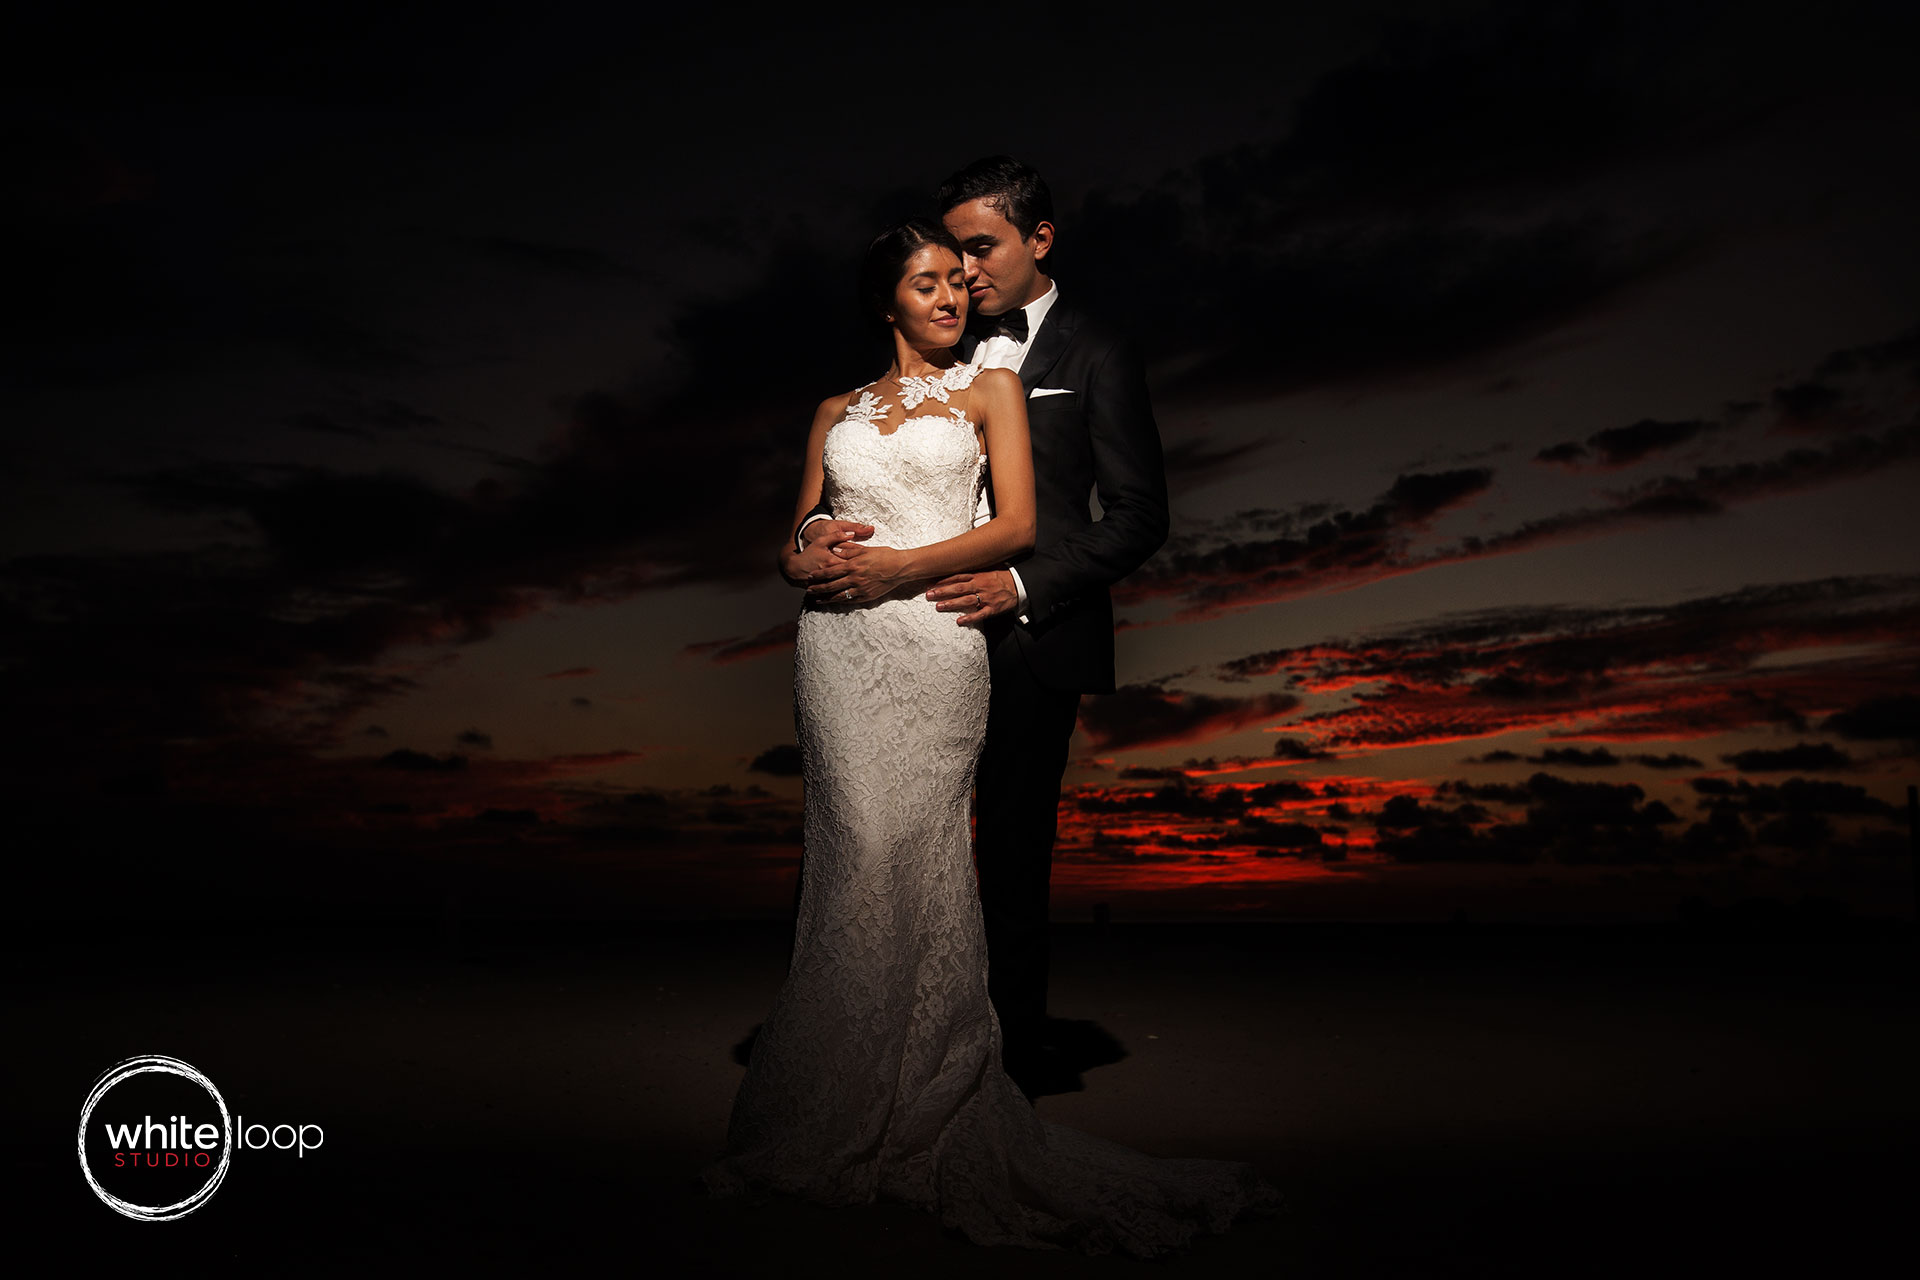 The bride and groom embracing in a landscape against a red sky of sunset.